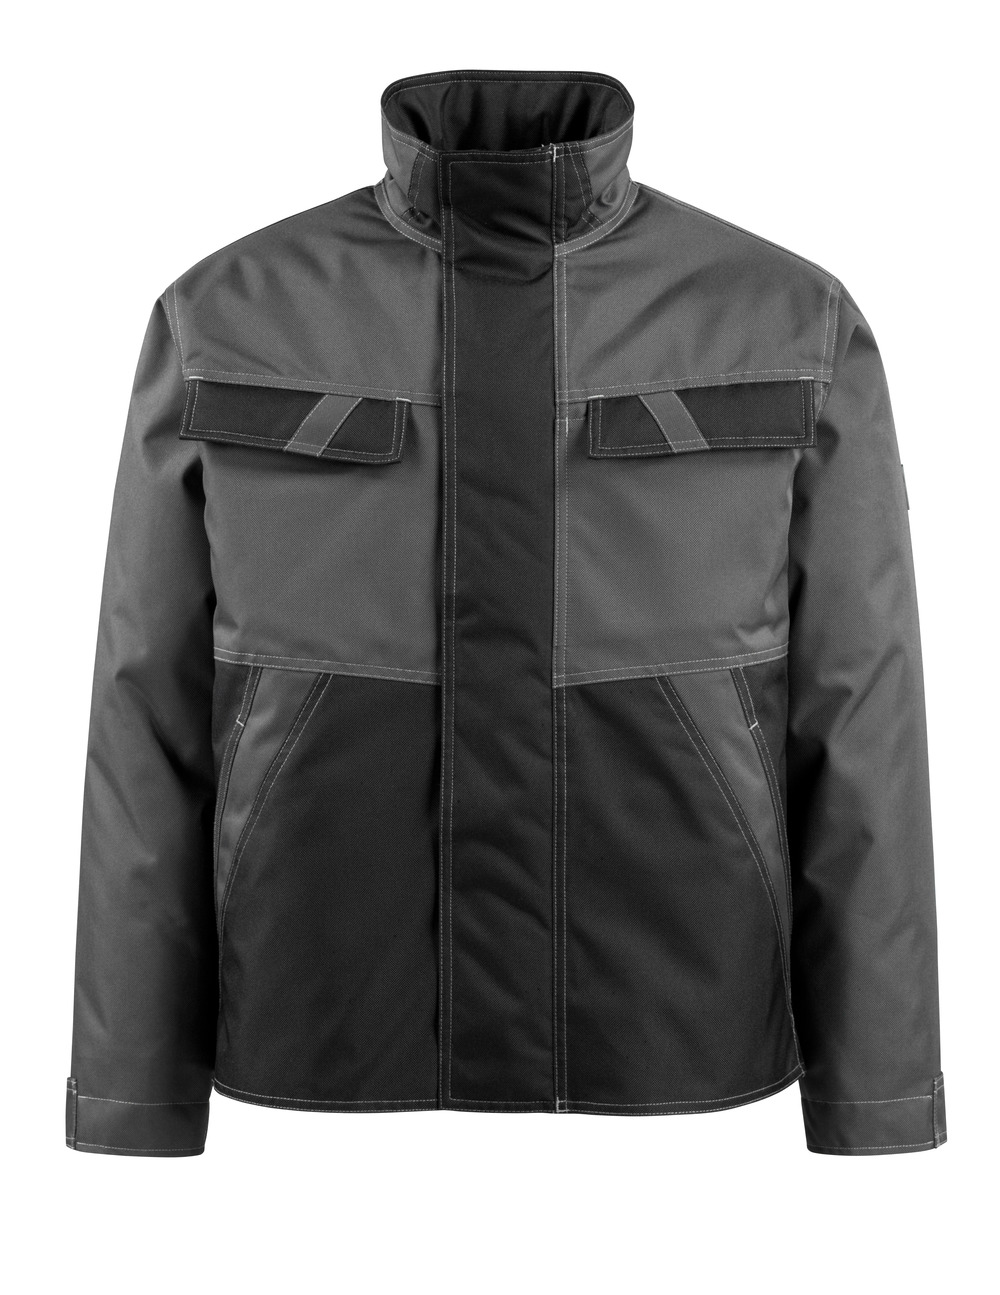 15735-126-1809 Winter Jacket - dark anthracite/black